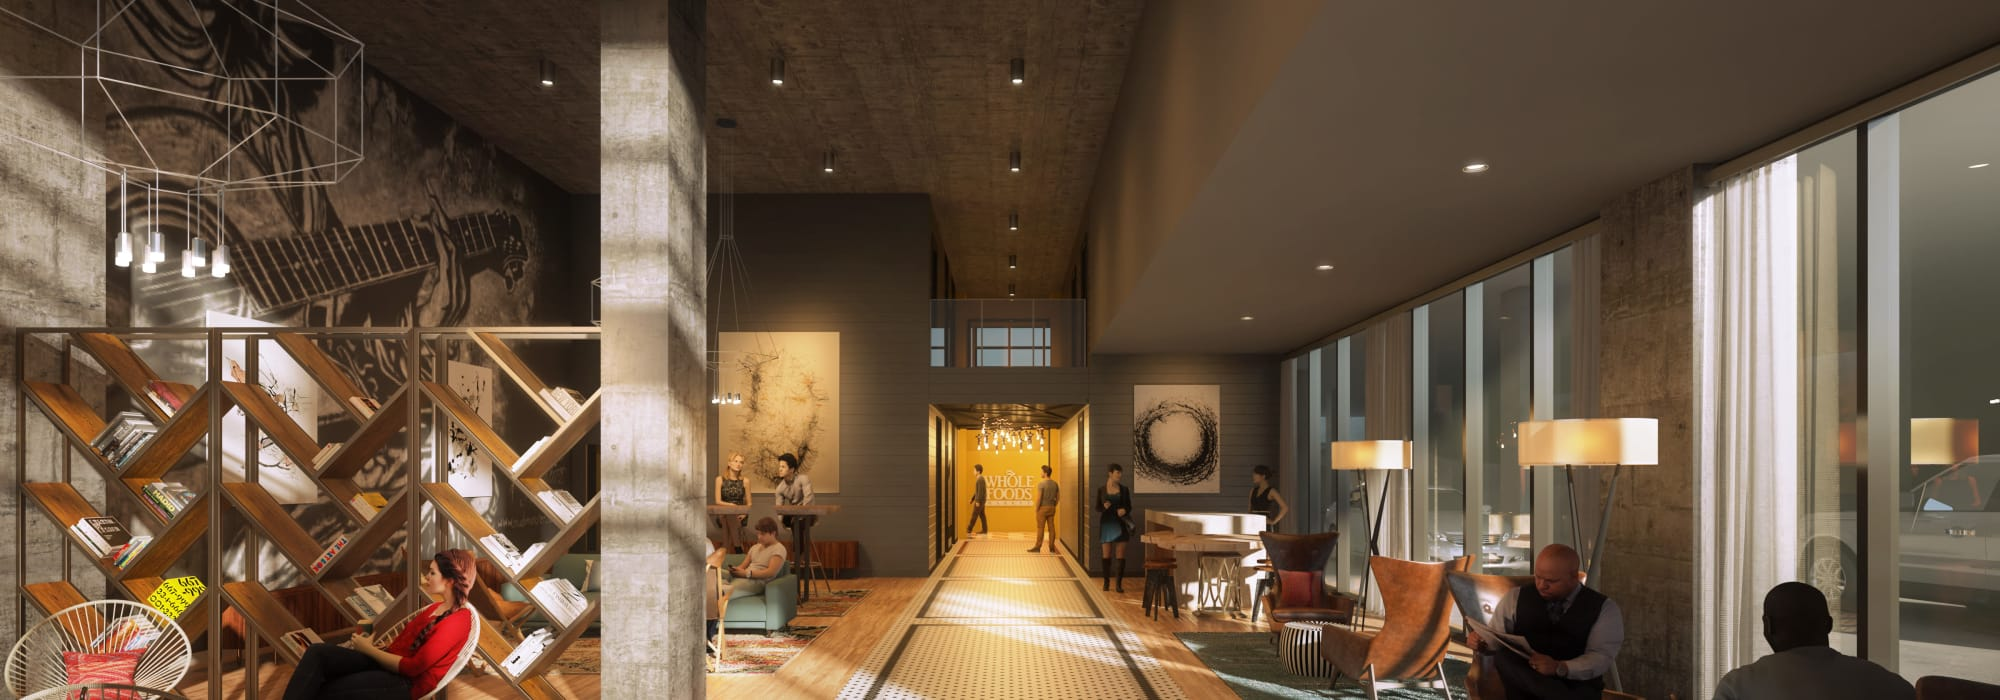 Rendering of the lobby interior at The Local Apartments in Tempe, Arizona